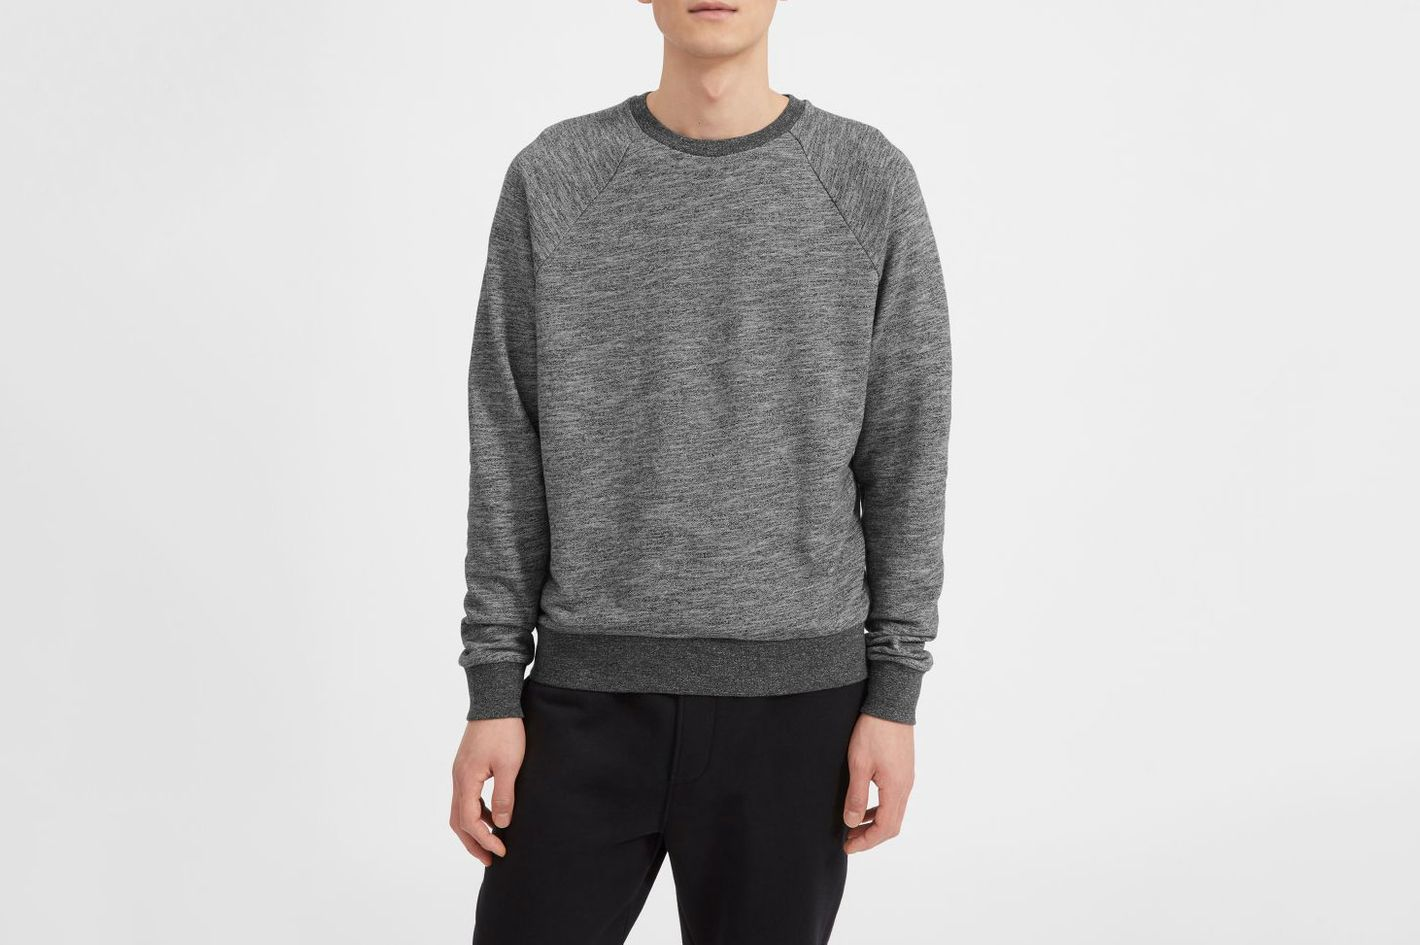 Everlane Crew Sweatshirt